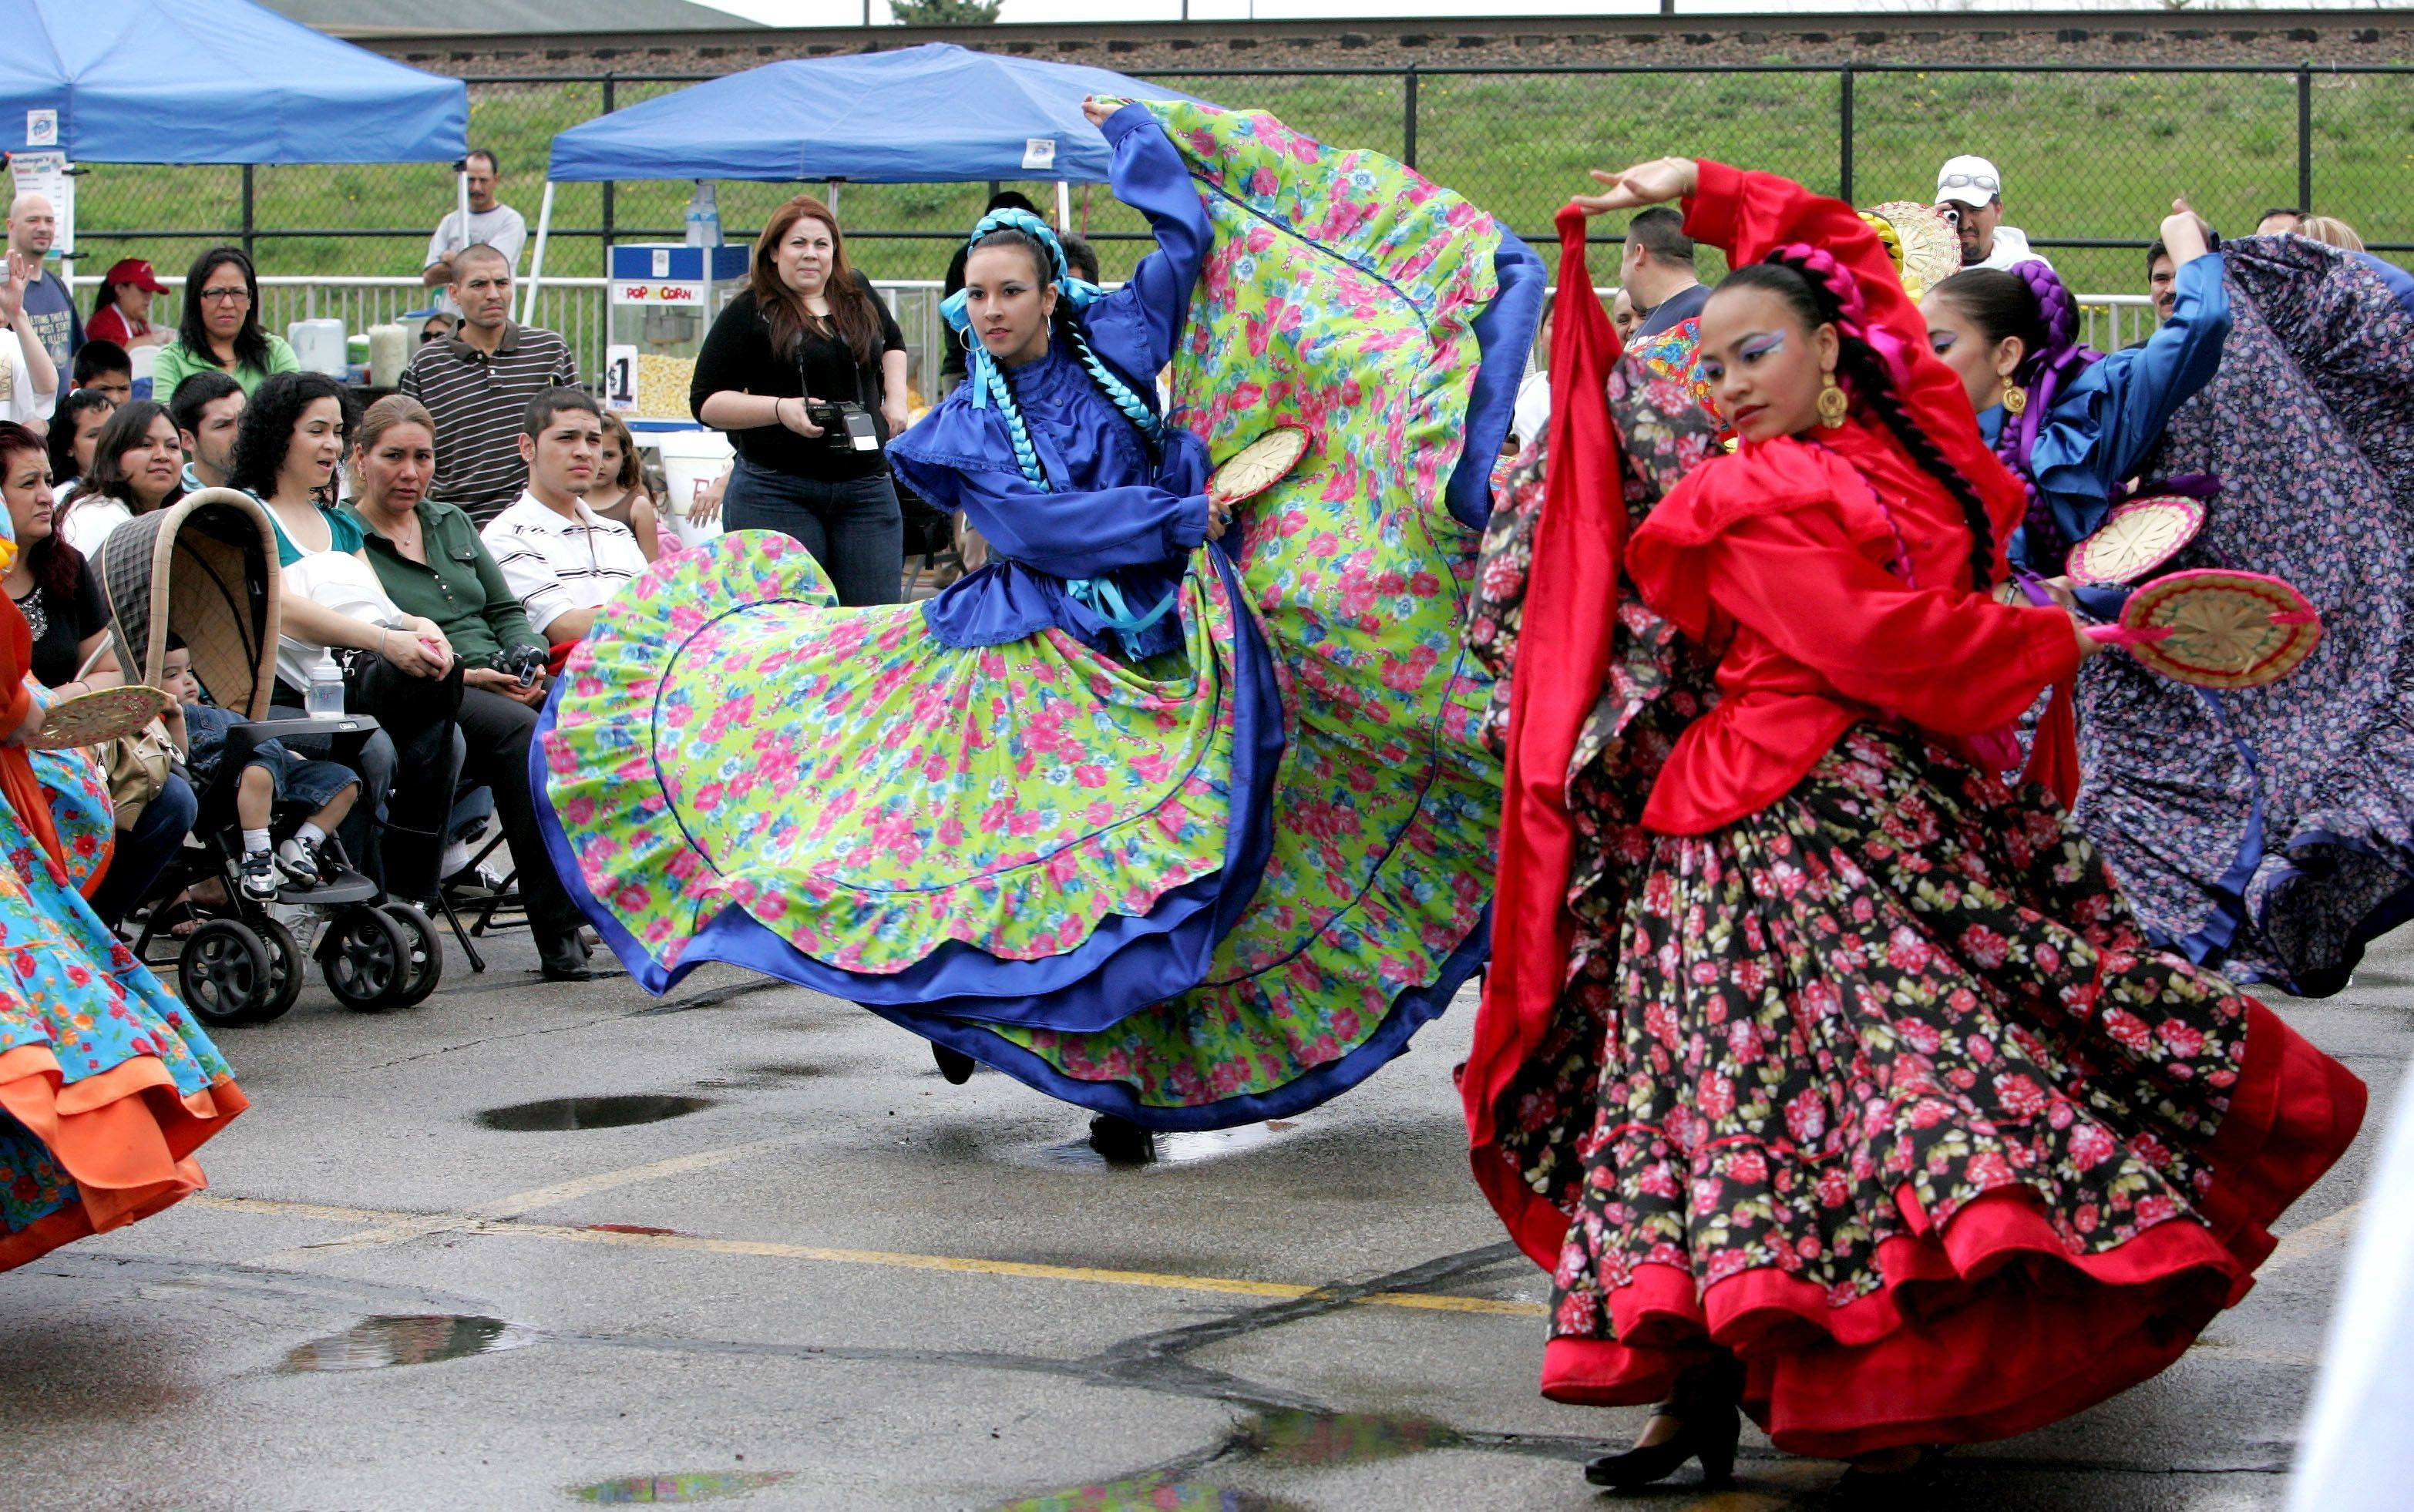 Dancers perform at El Dia de los Ninos (The Day of the Children) hosted by the Hispanic Heritage Advisory Board in Aurora. This year's festival will include a magic show and performances by Wulin Dynasty Cheer and students from two Aurora school districts.